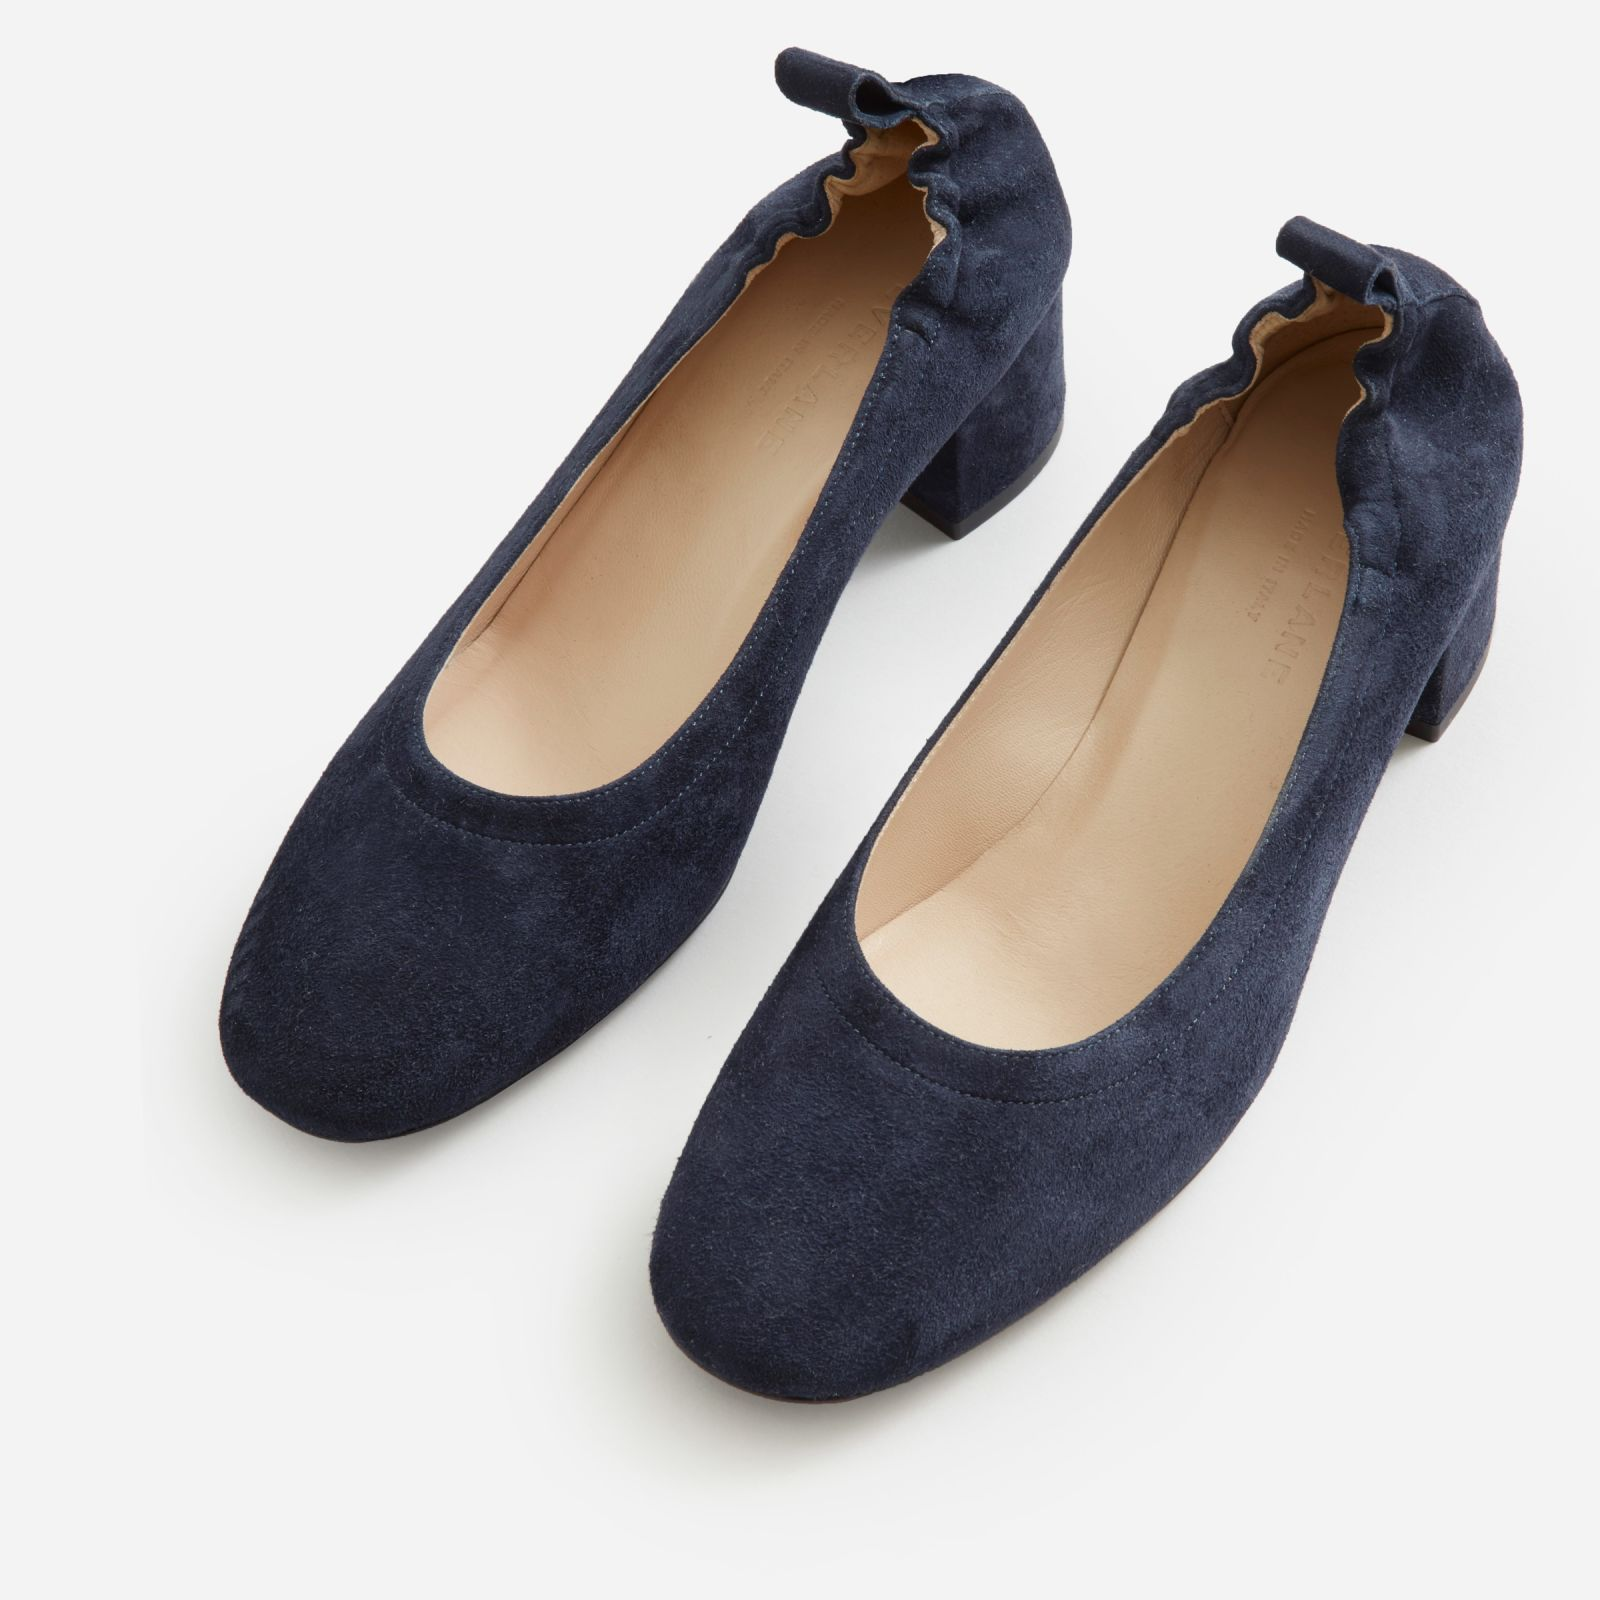 d3d939448c Women's Leather Block Heel Pump by Everlane in Navy Suede | Products ...